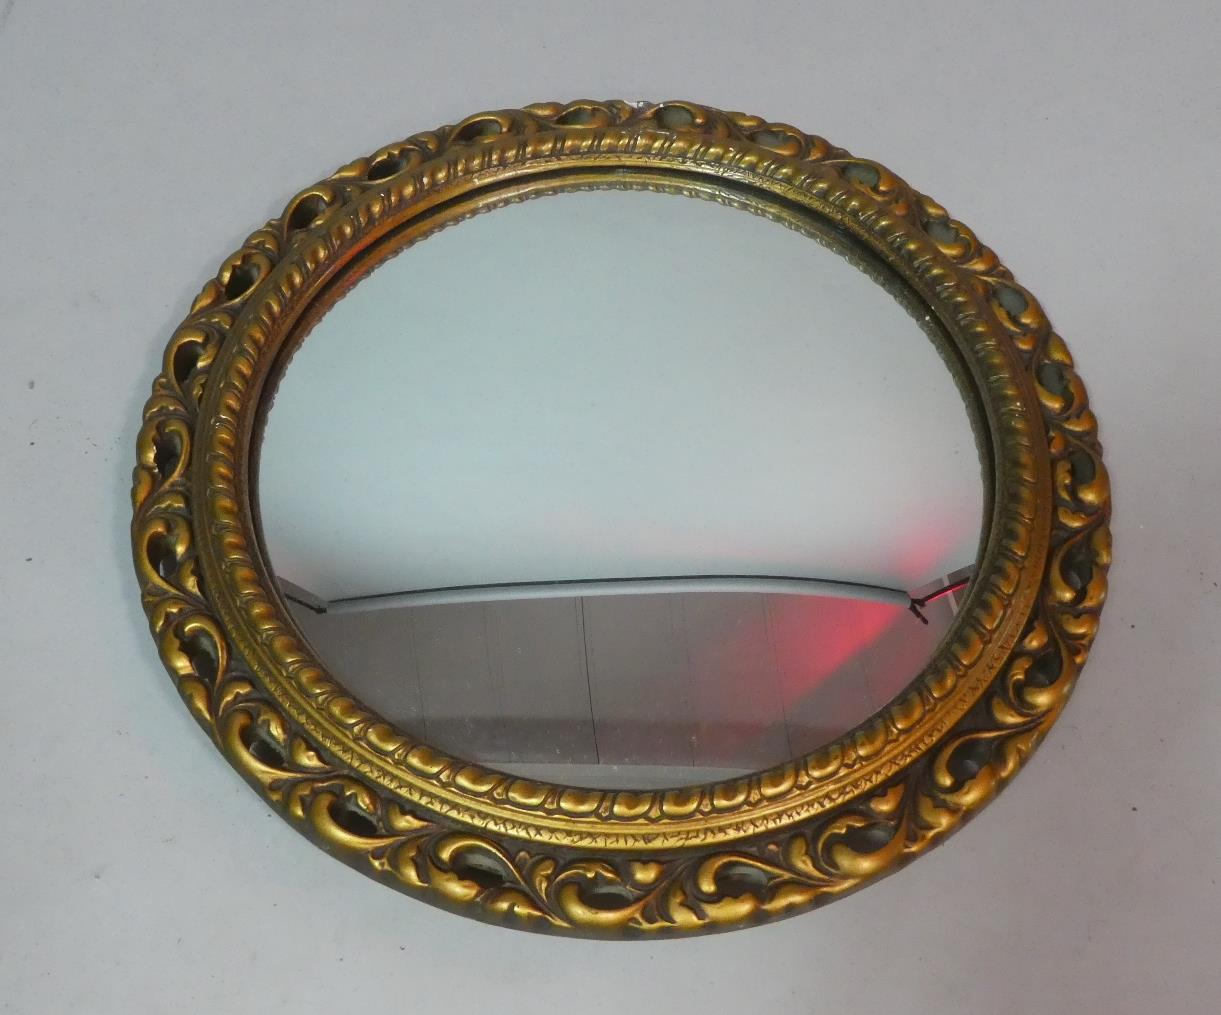 Lot 449 - Circular Pierced Gilt Frame Wall Mirror, 45cm Diameter